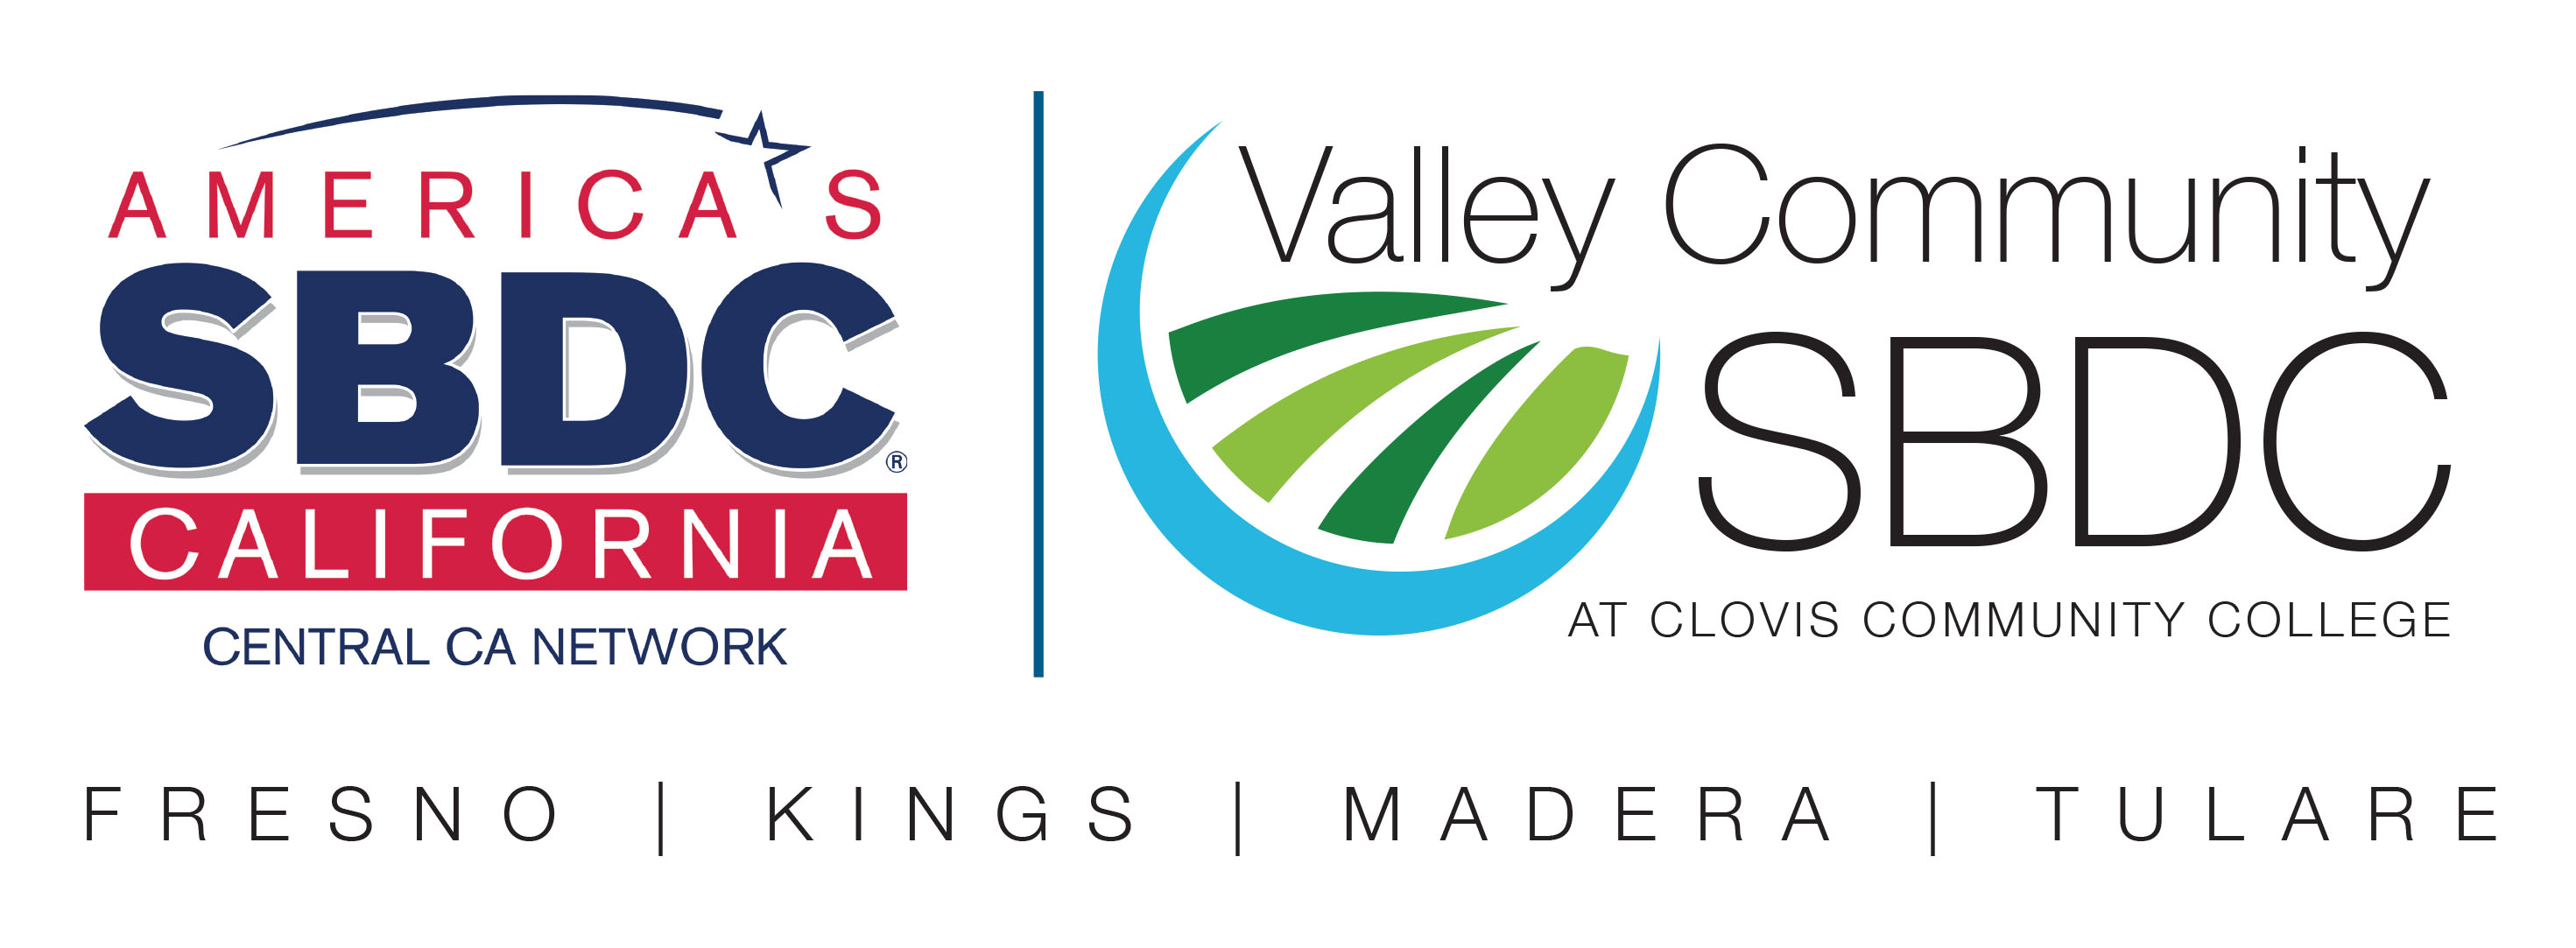 California Small Business Development Center and CCC